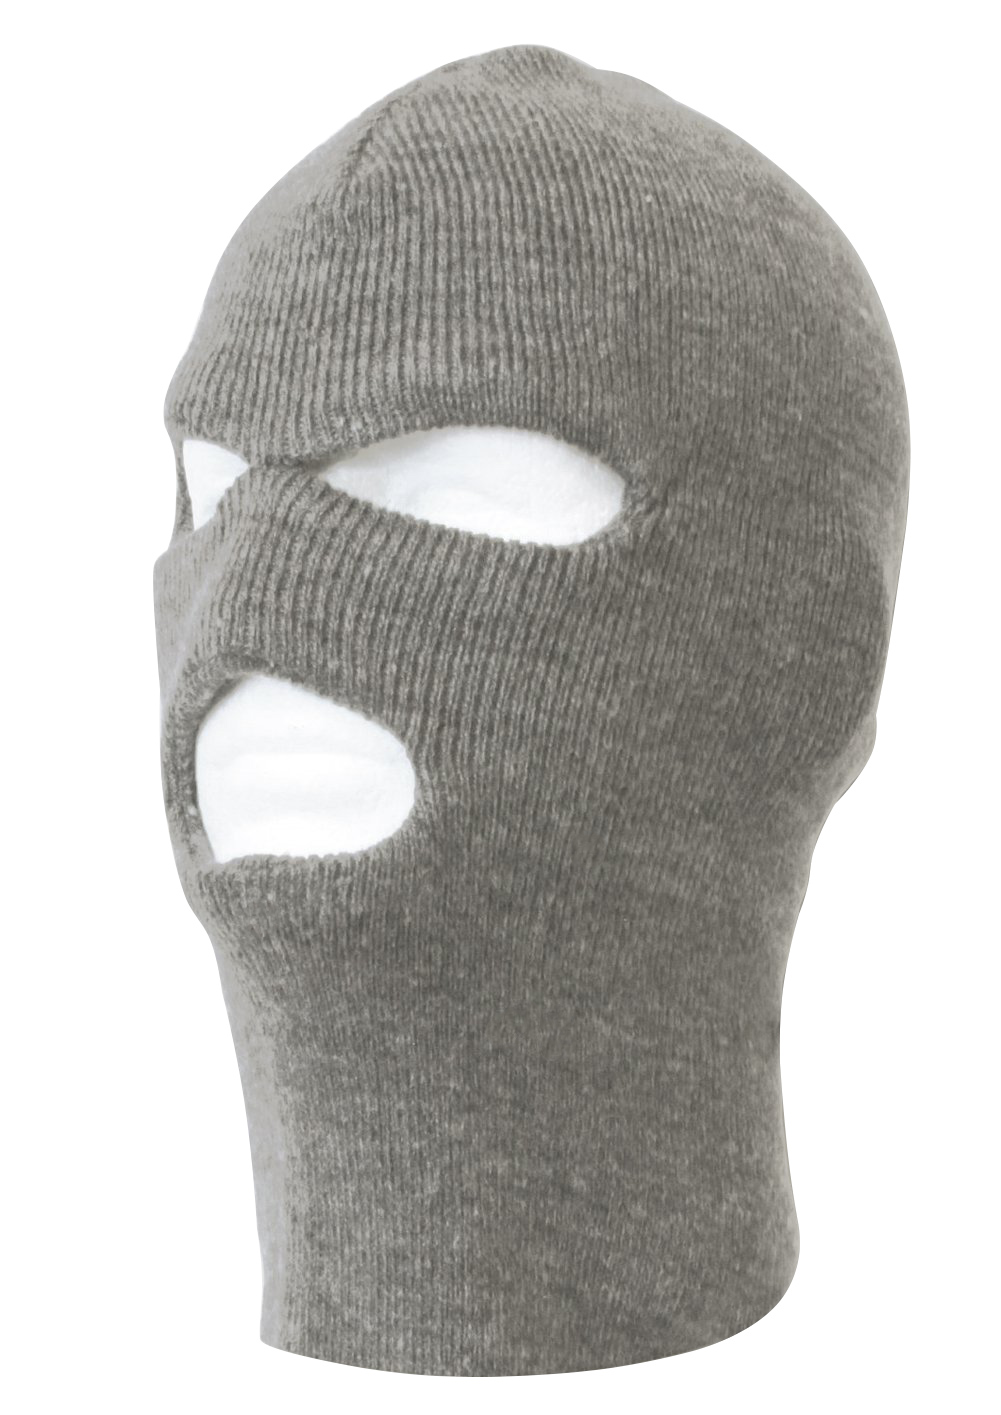 TopHeadwear's 3 Hole Face Ski Mask, Heather Grey by